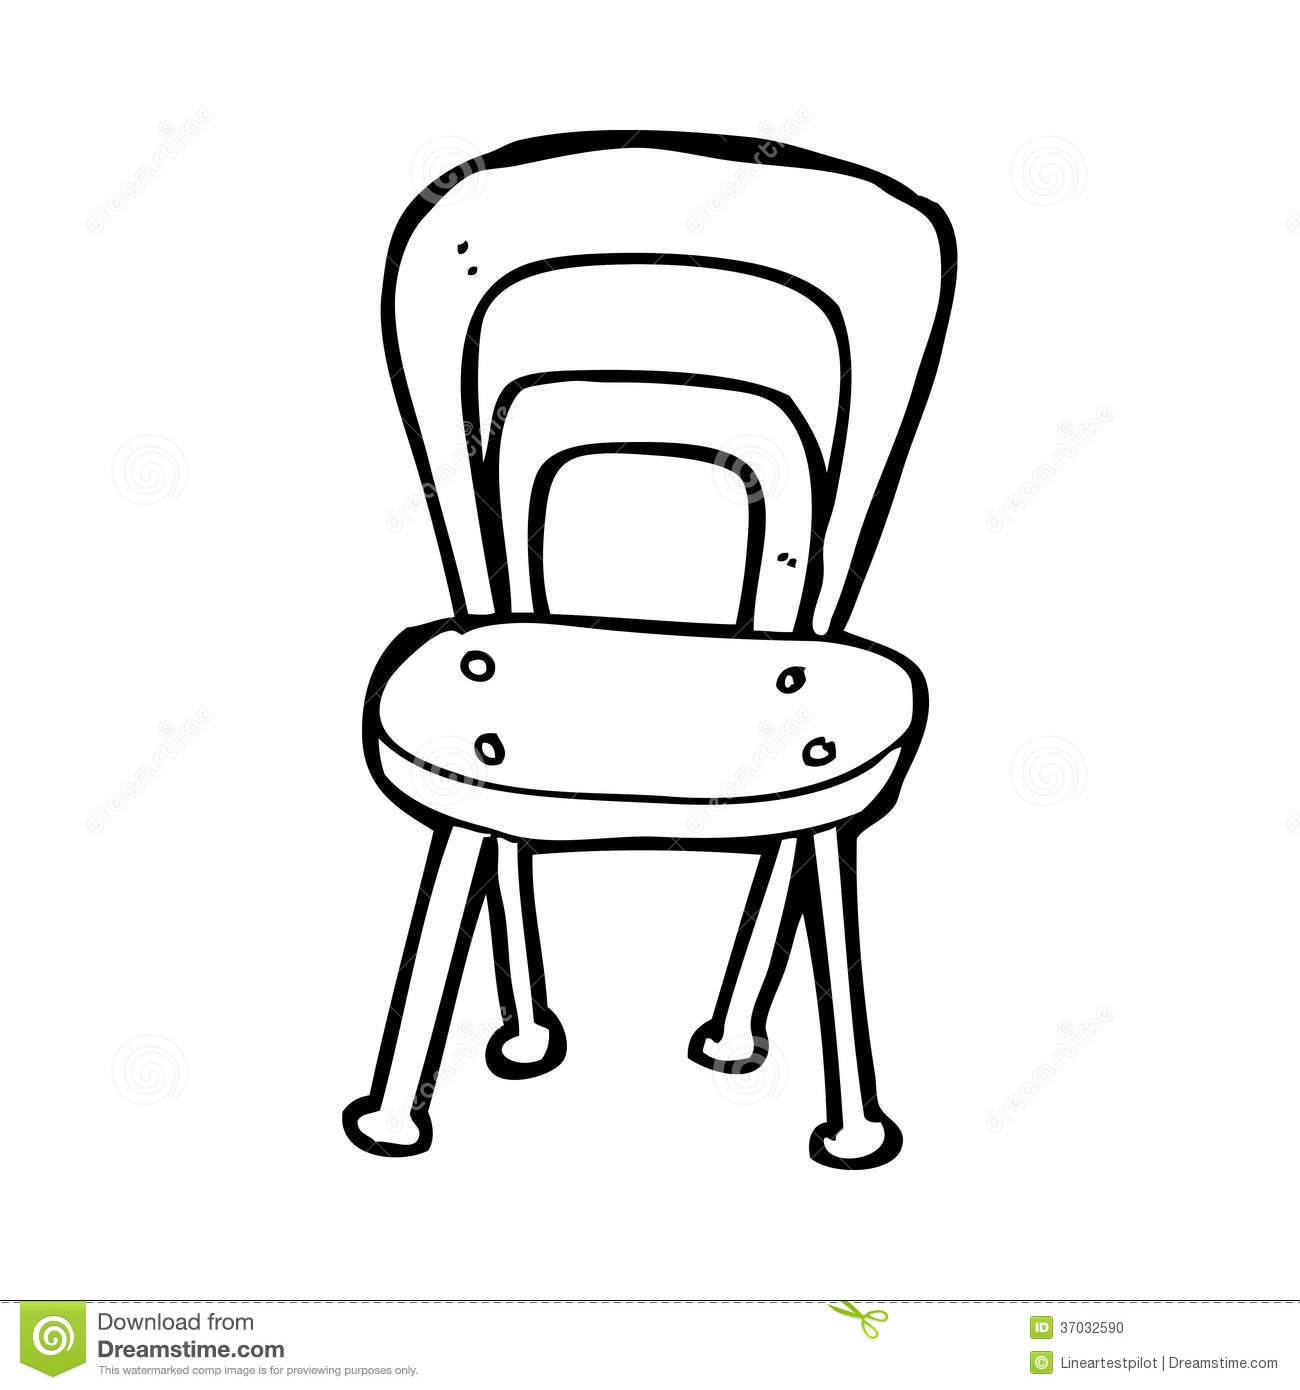 Black and white chair drawing - Stock Photo Cartoon Chair Black White Line Retro Style Vector Available Image37032590 Jpg 1300x1390 White Chair